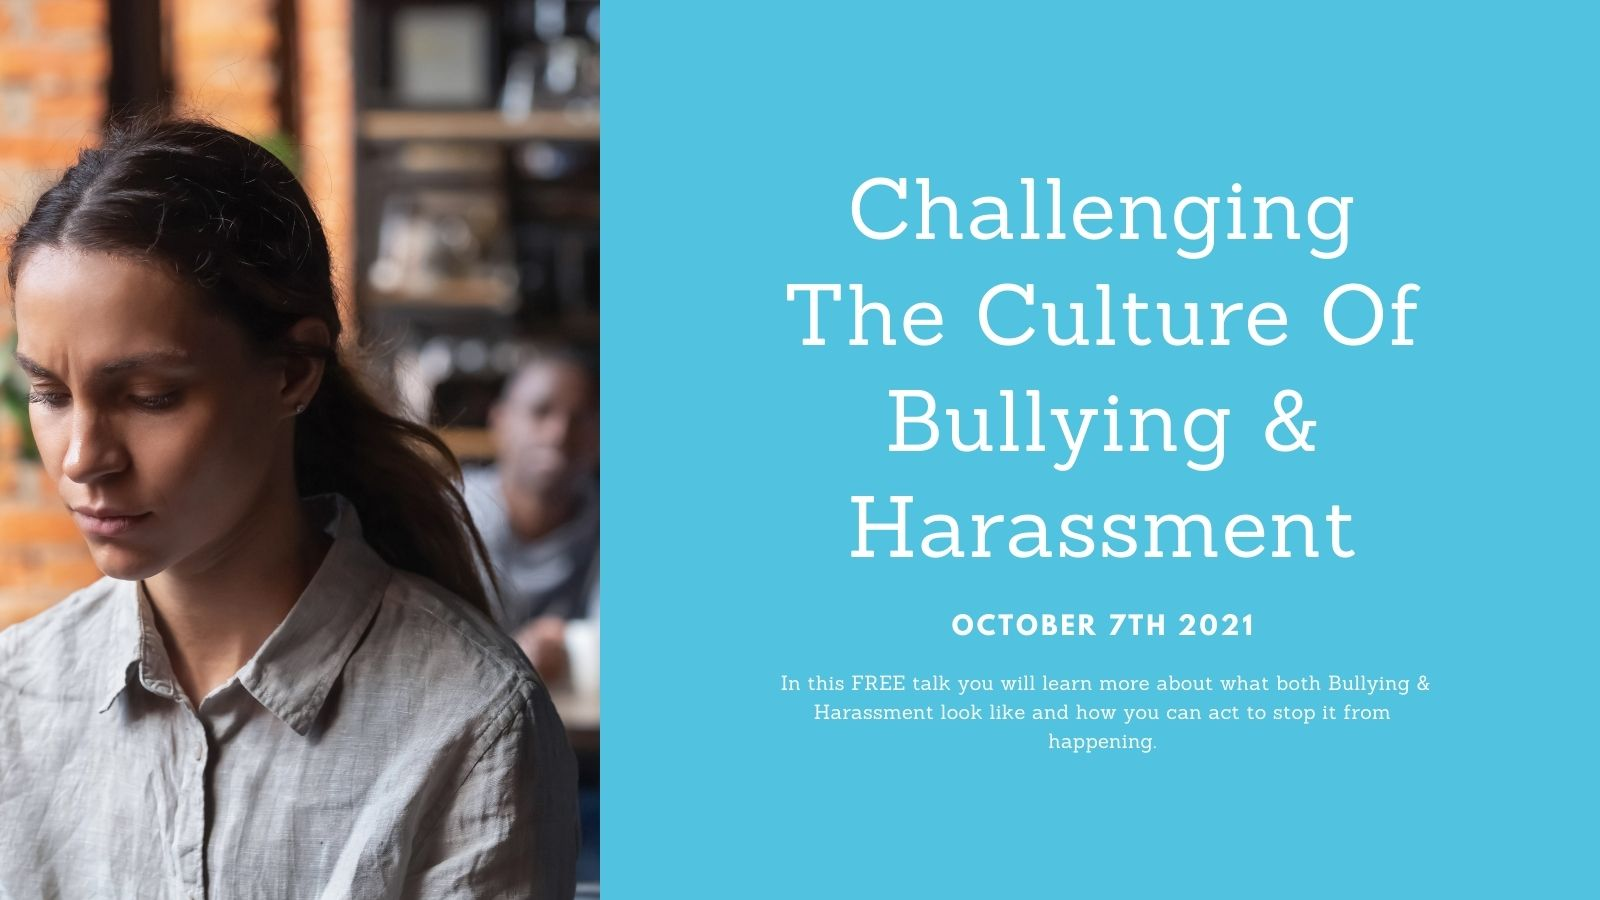 Challenging The Culture Of Bullying & Harassment